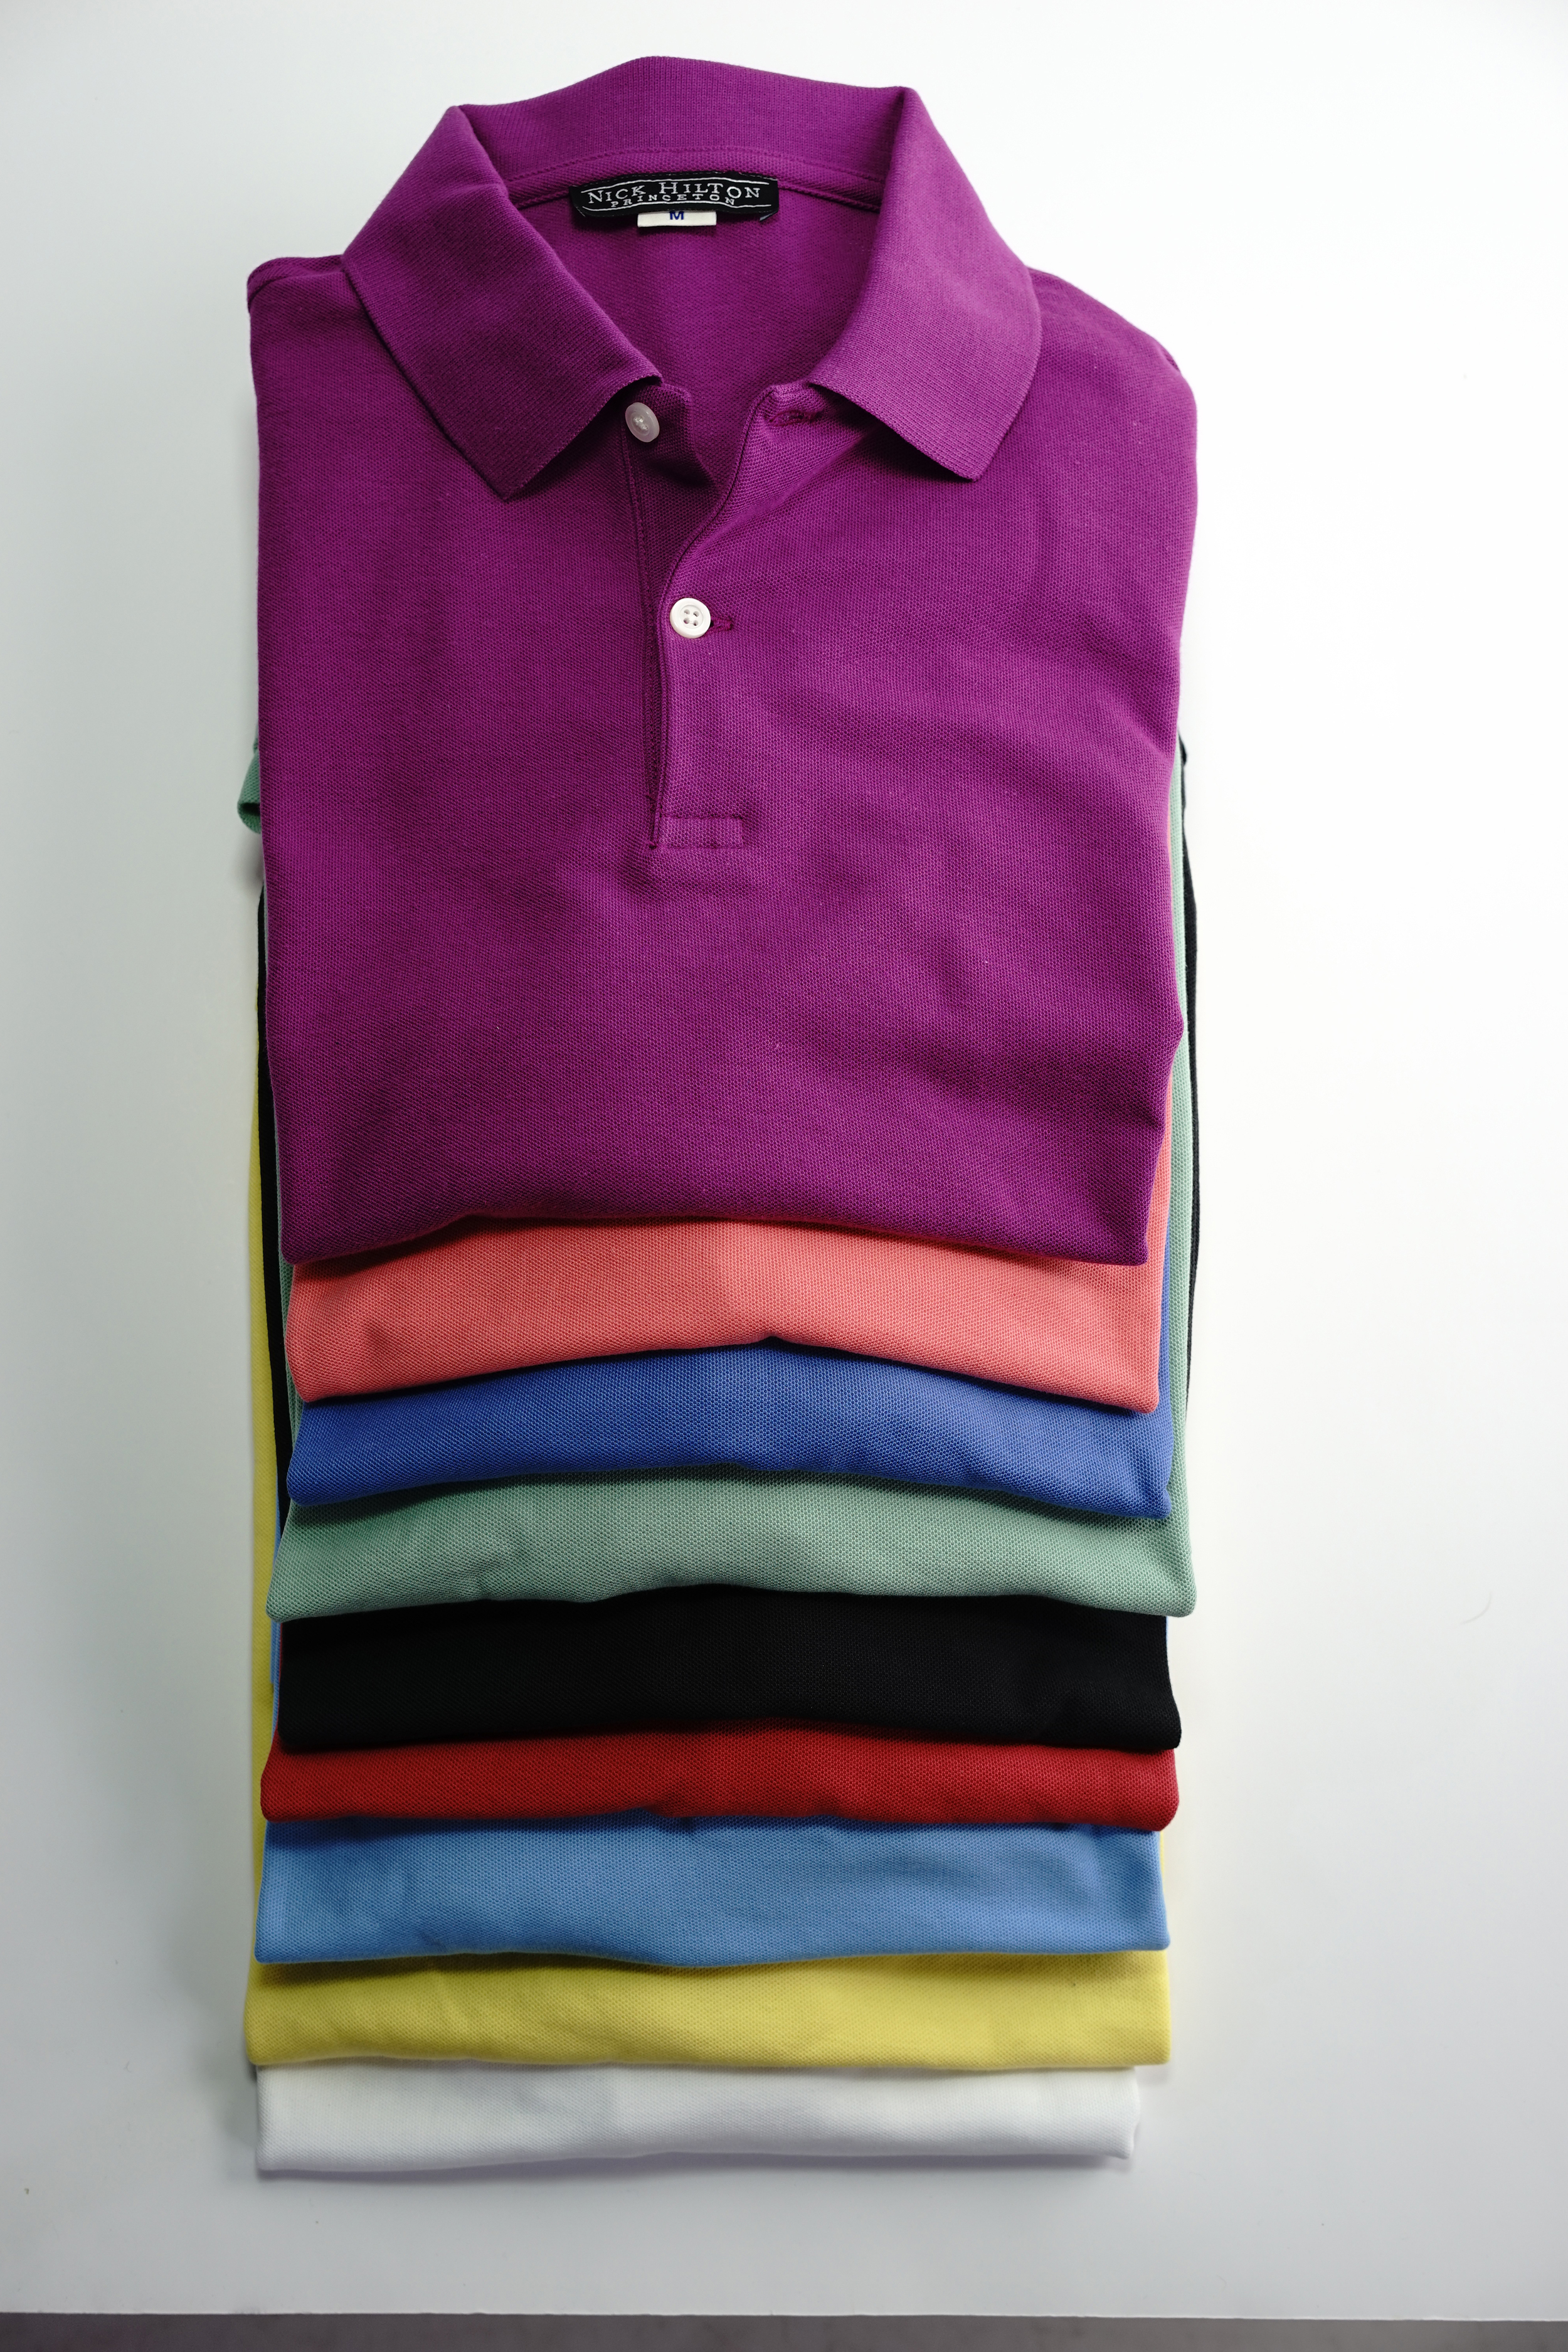 The Nick Hilton polo shirt comes in 9 colors and two fits: trim and classic.